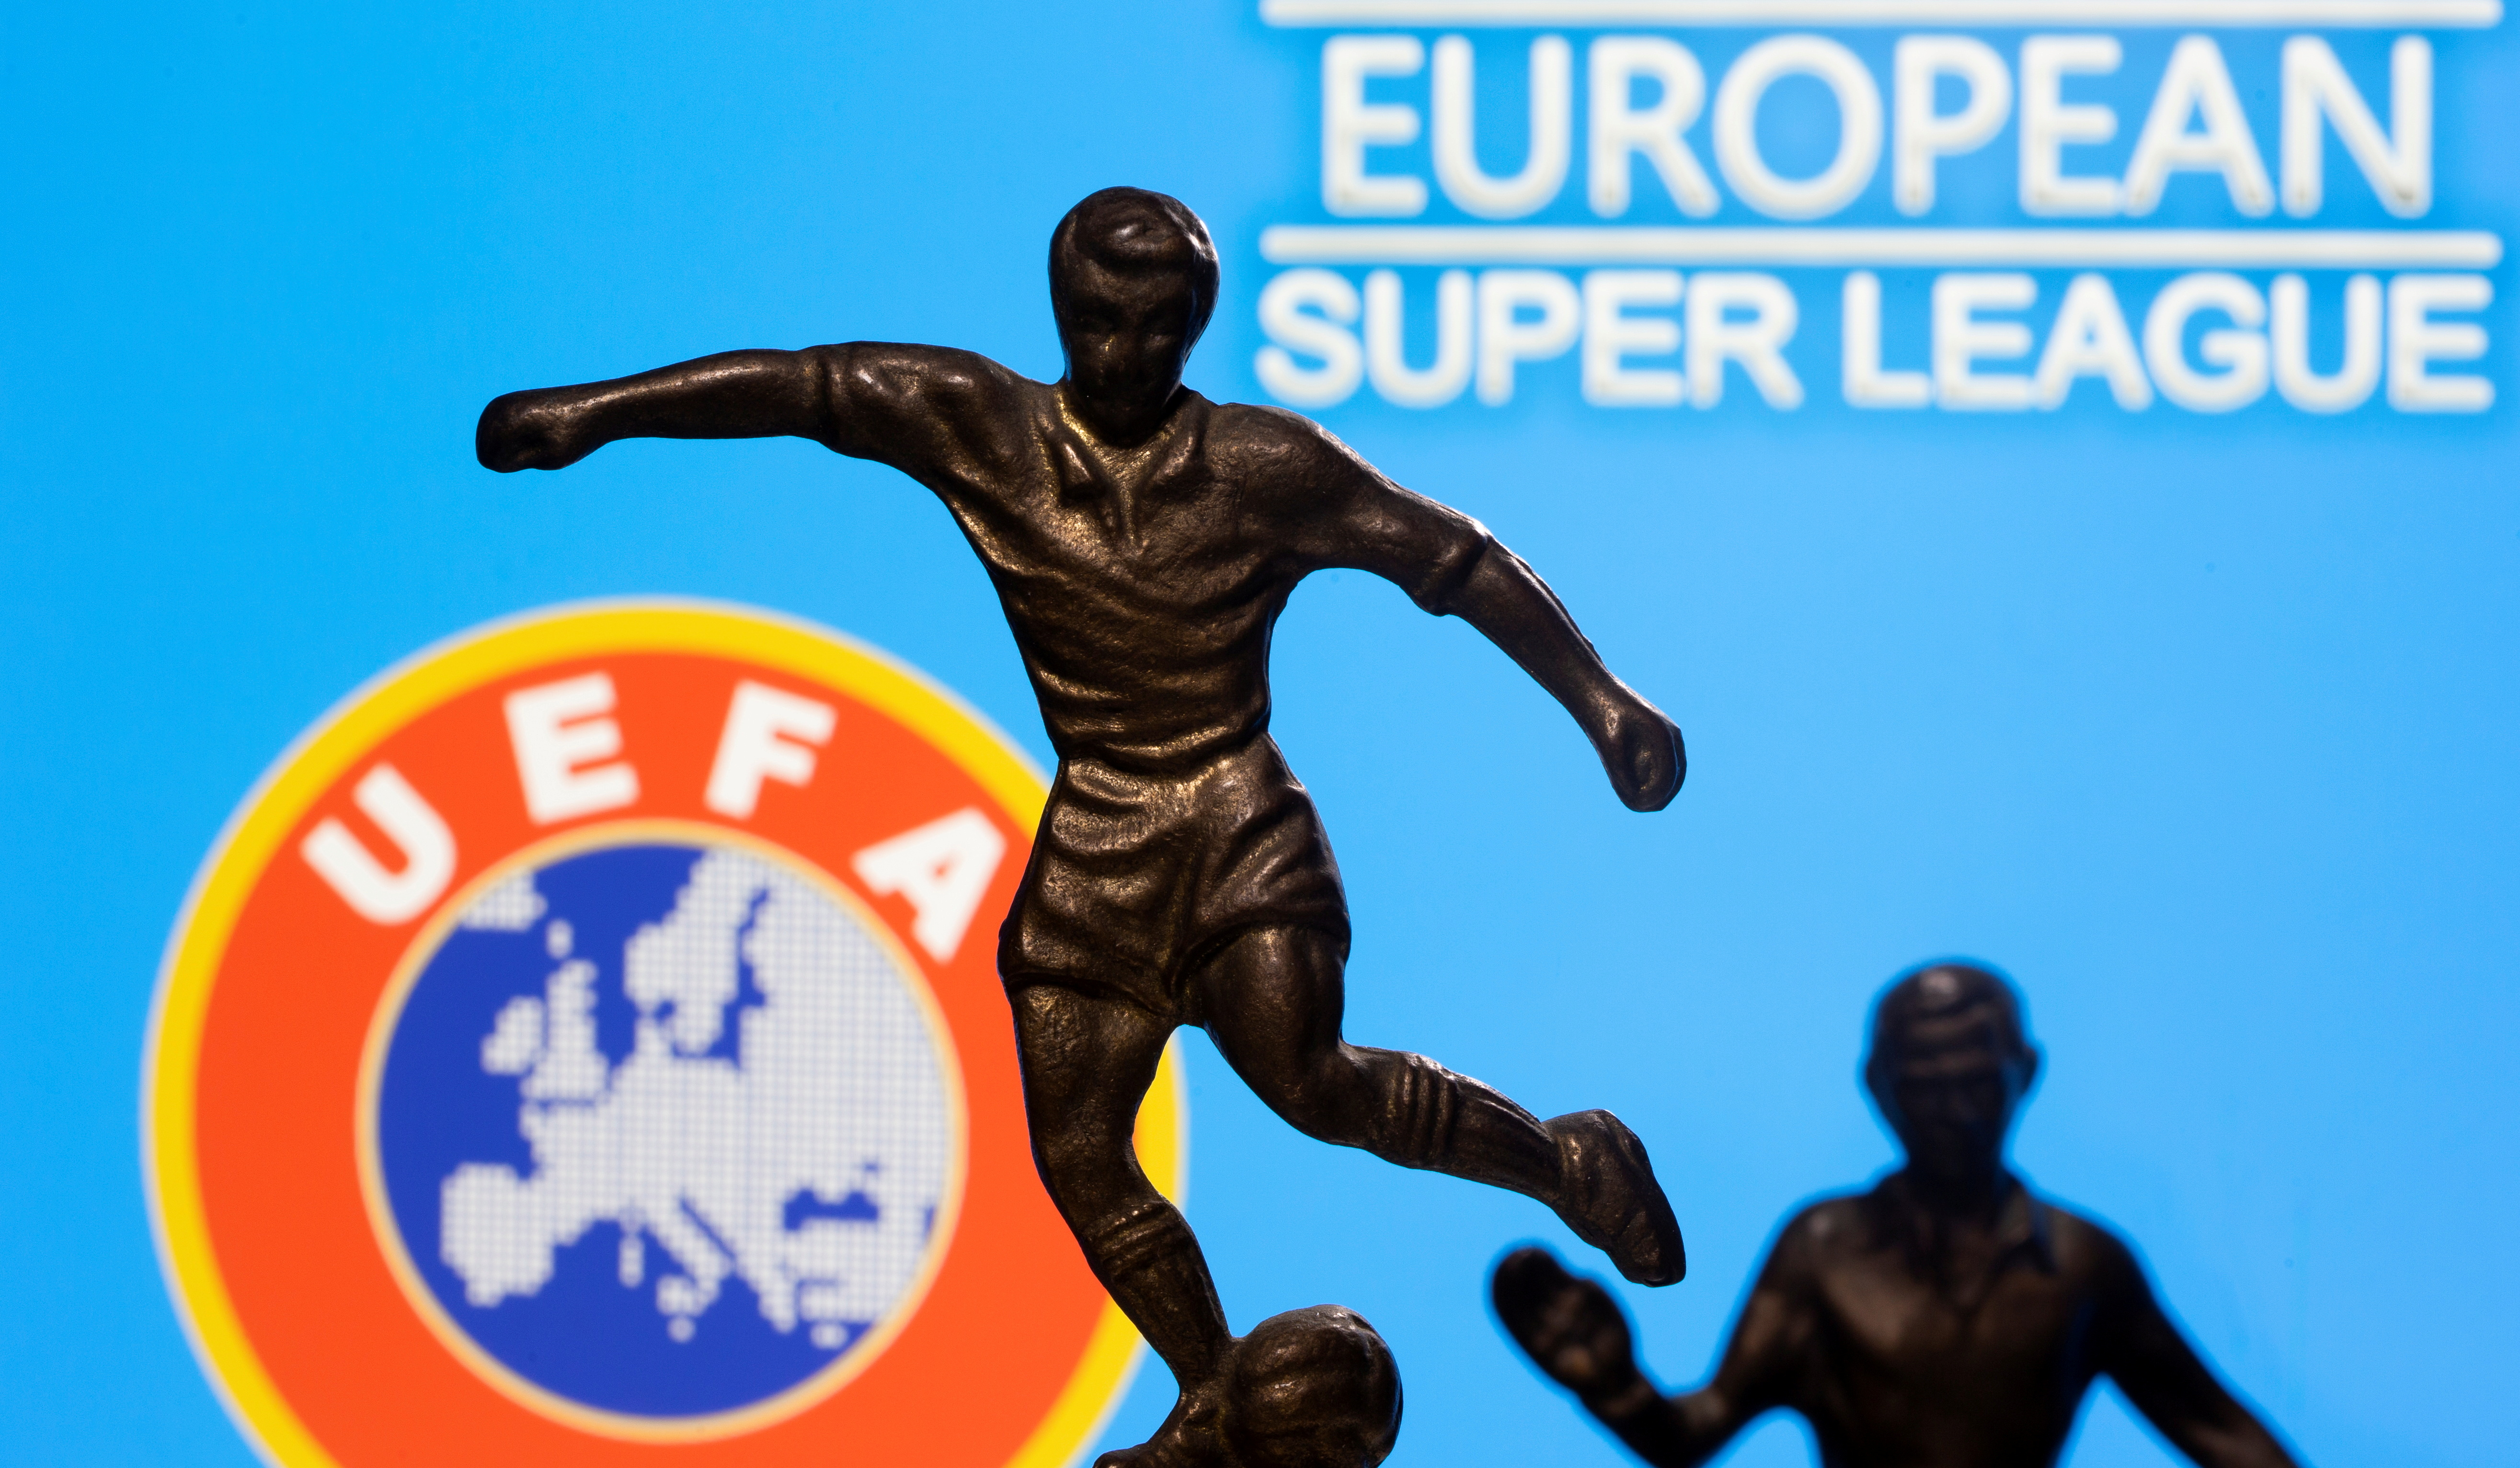 Metal figures of football players are seen in front of the words